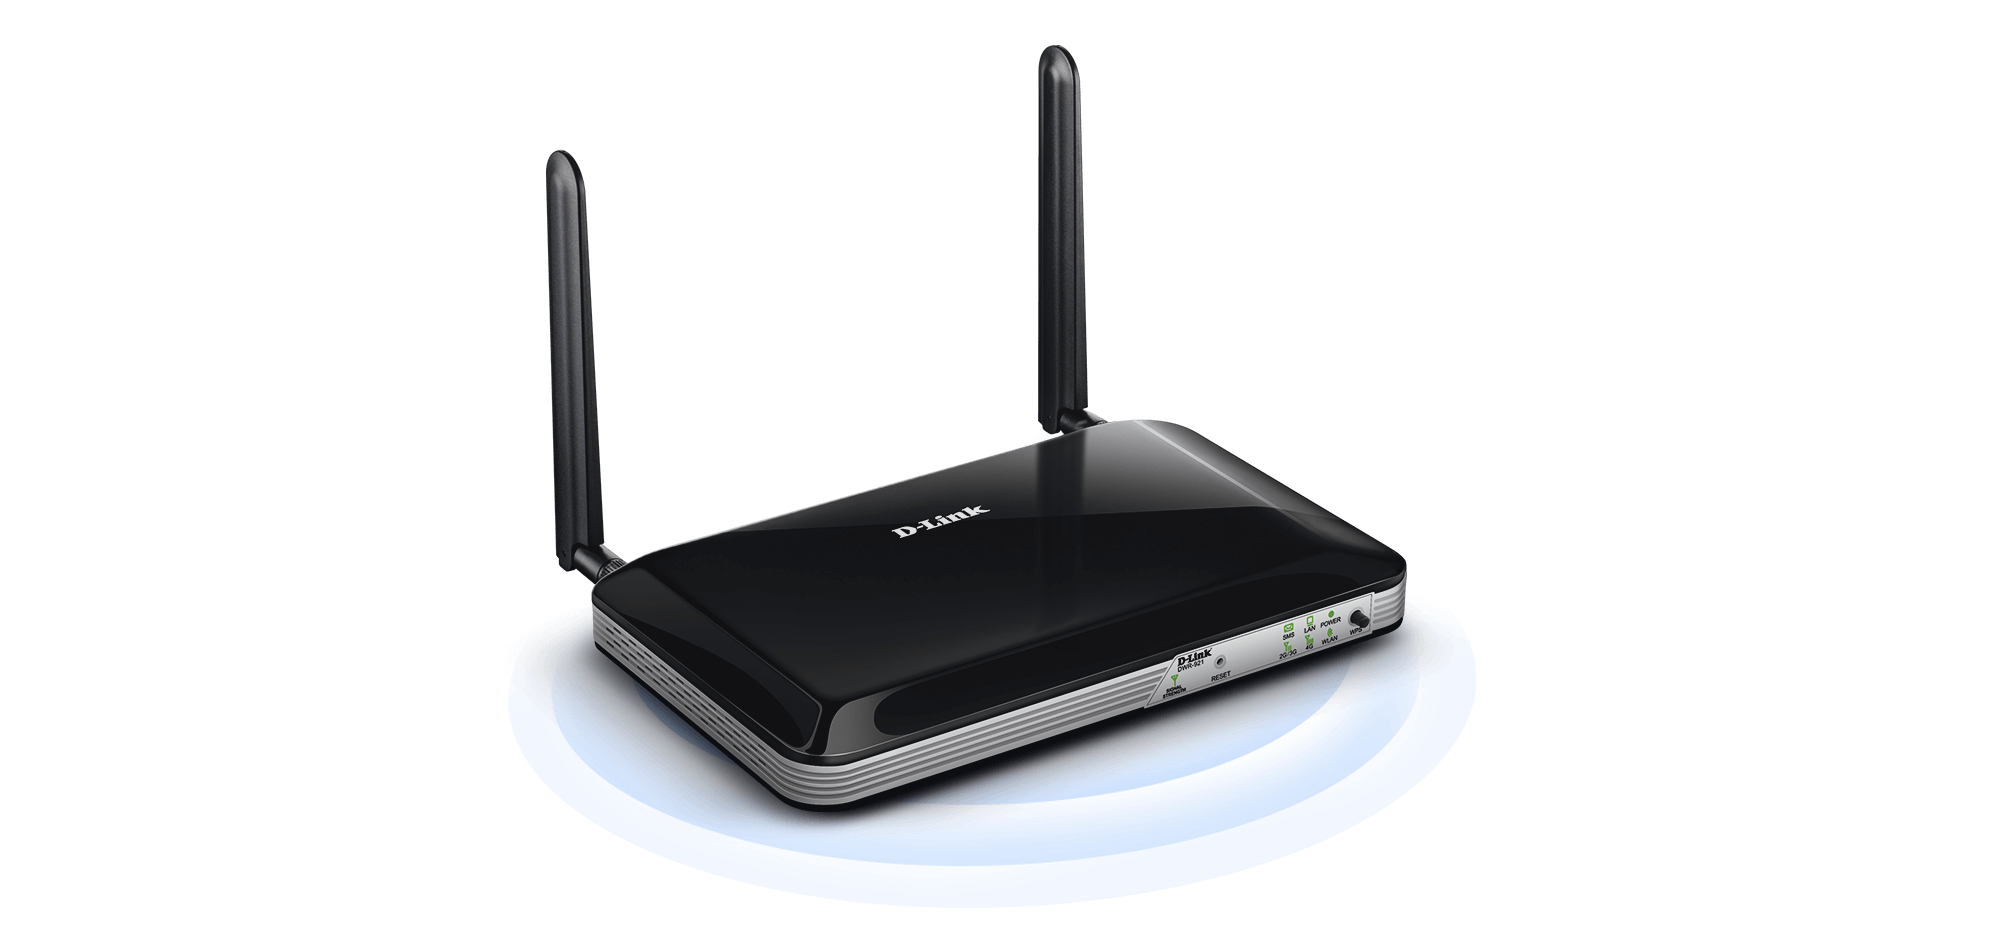 DWR-921 4G LTE Router